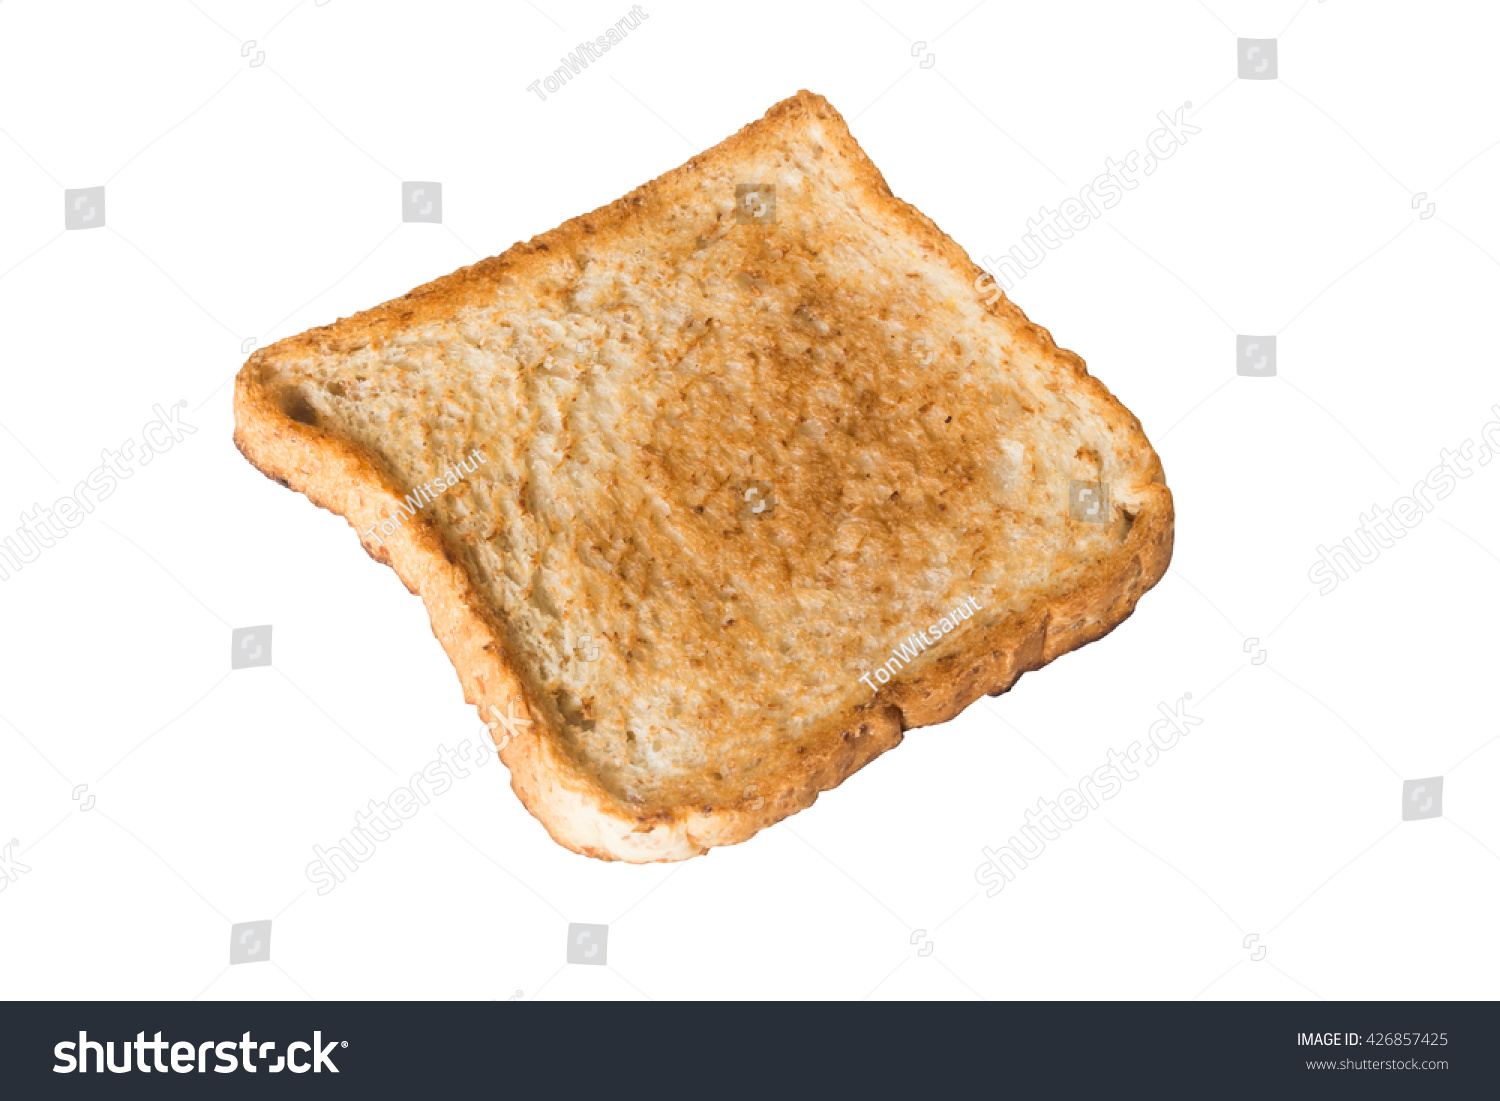 toast singles Base toast element, which contains at least a single visual element.